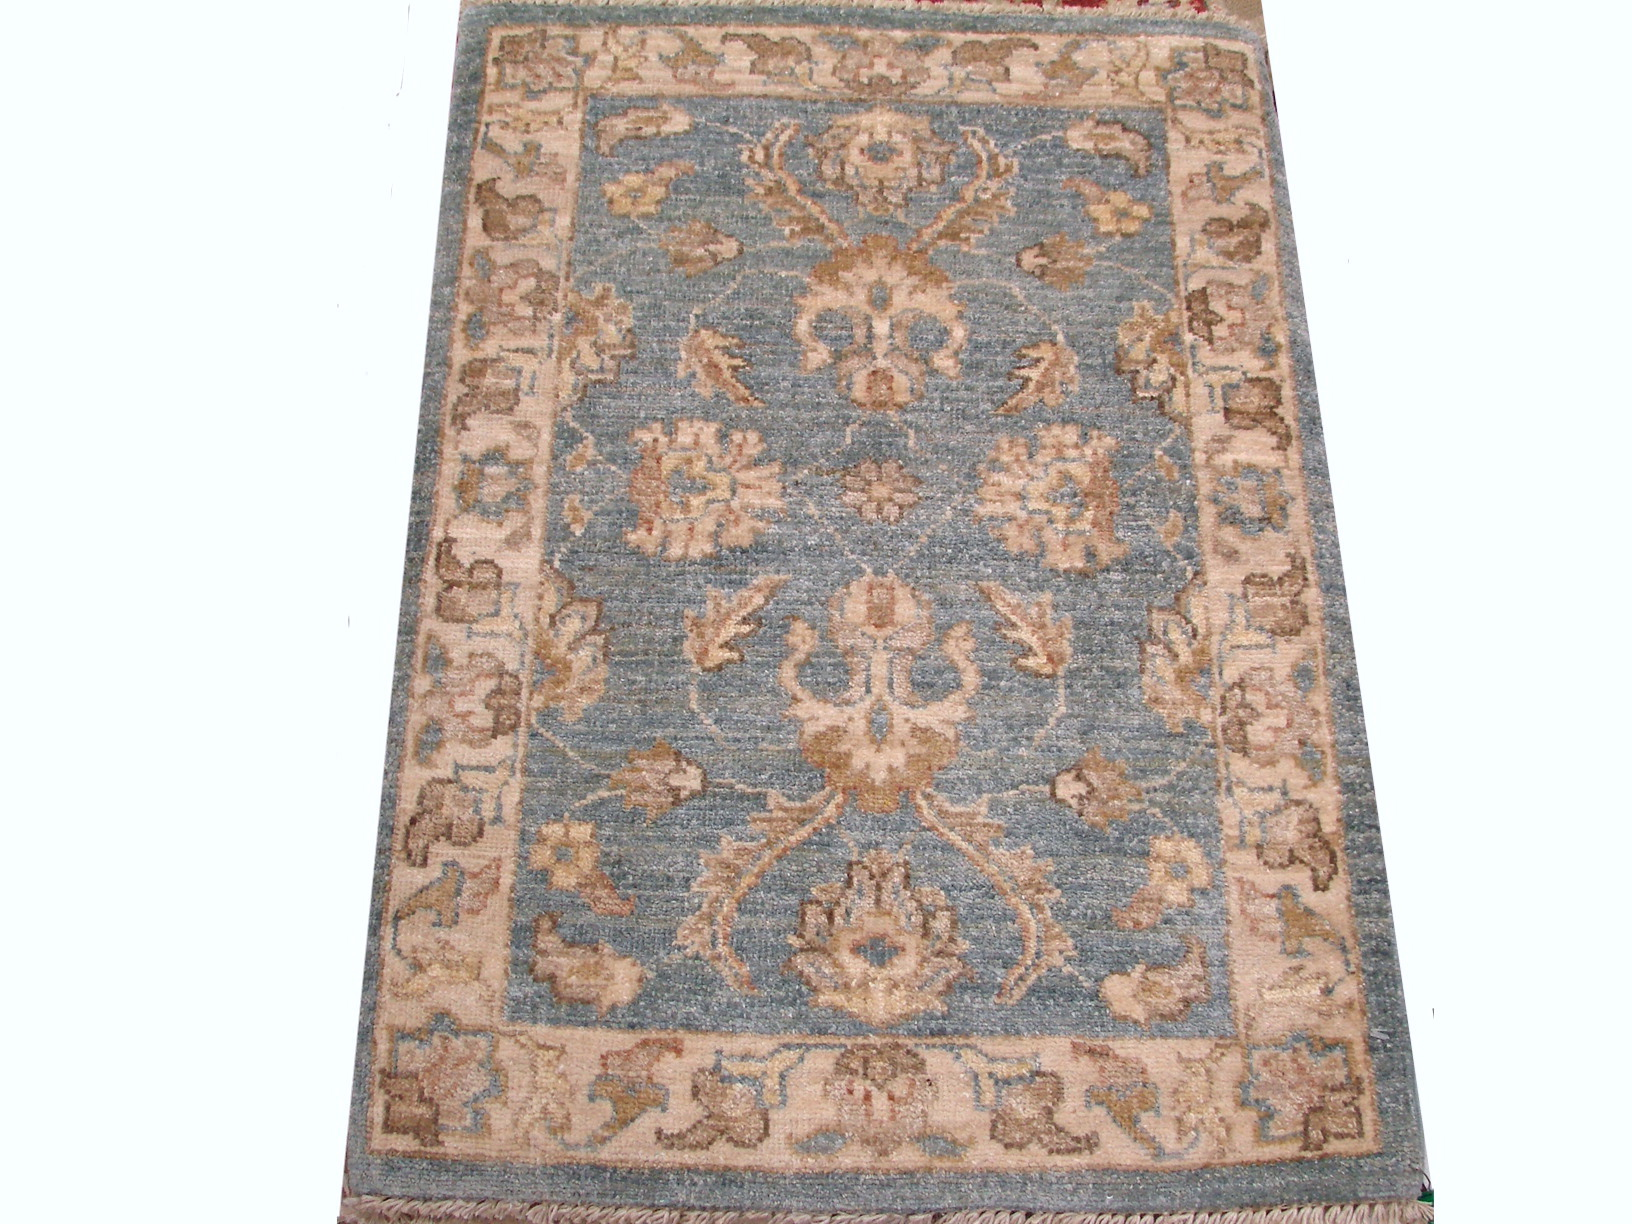 2X3 Peshawar Hand Knotted Wool Area Rug - MR13273